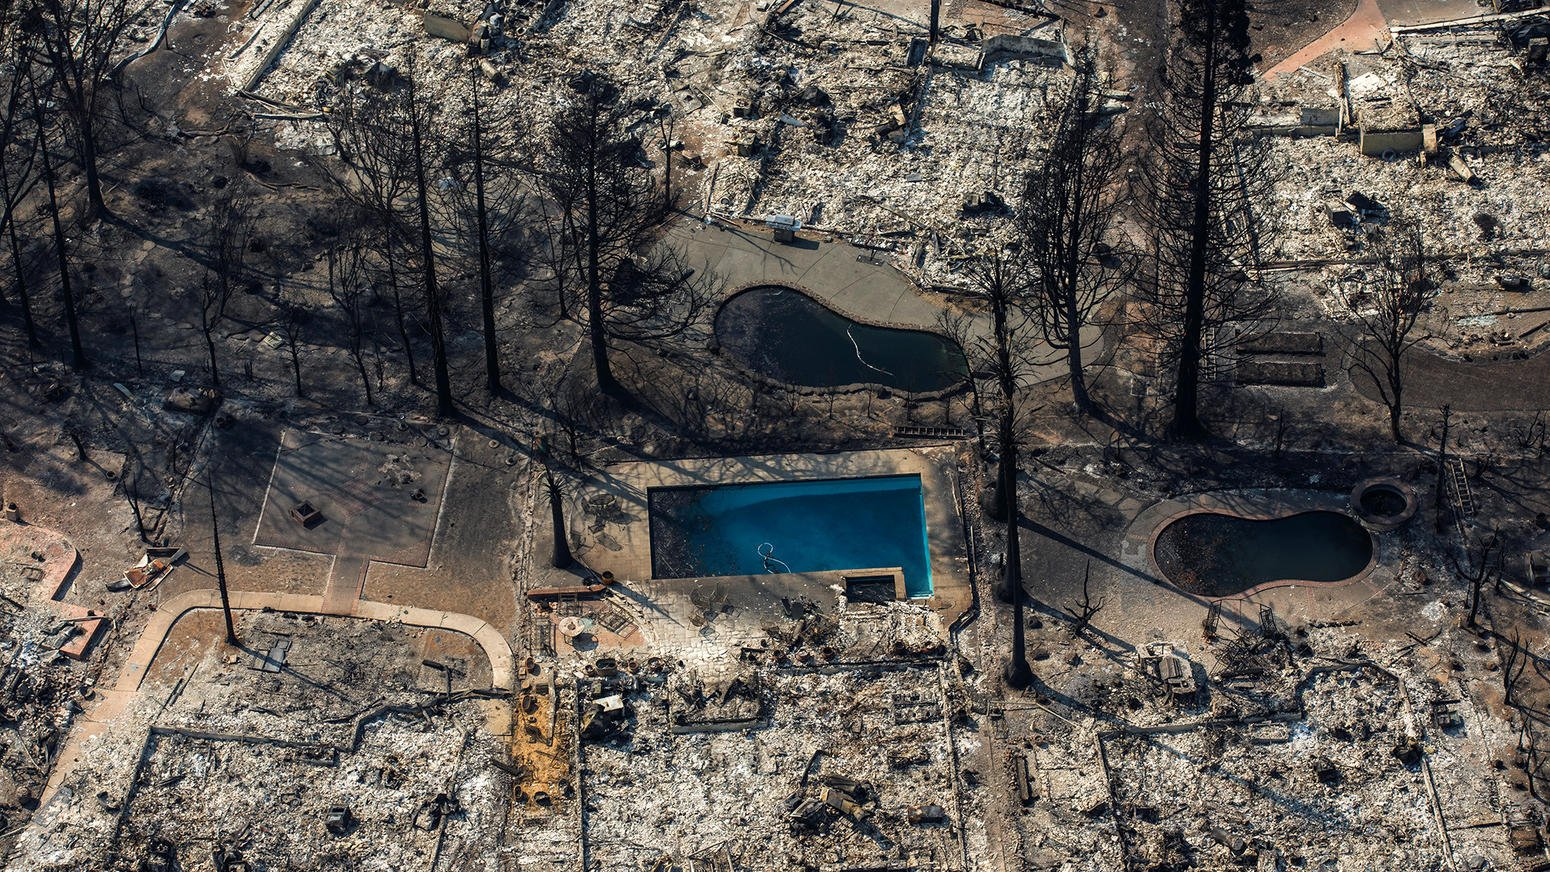 Was your house damaged or destroyed in the Northern California fires? Tell us your story https://t.co/0rmg4rLA8x https://t.co/4XIeTWVzvD